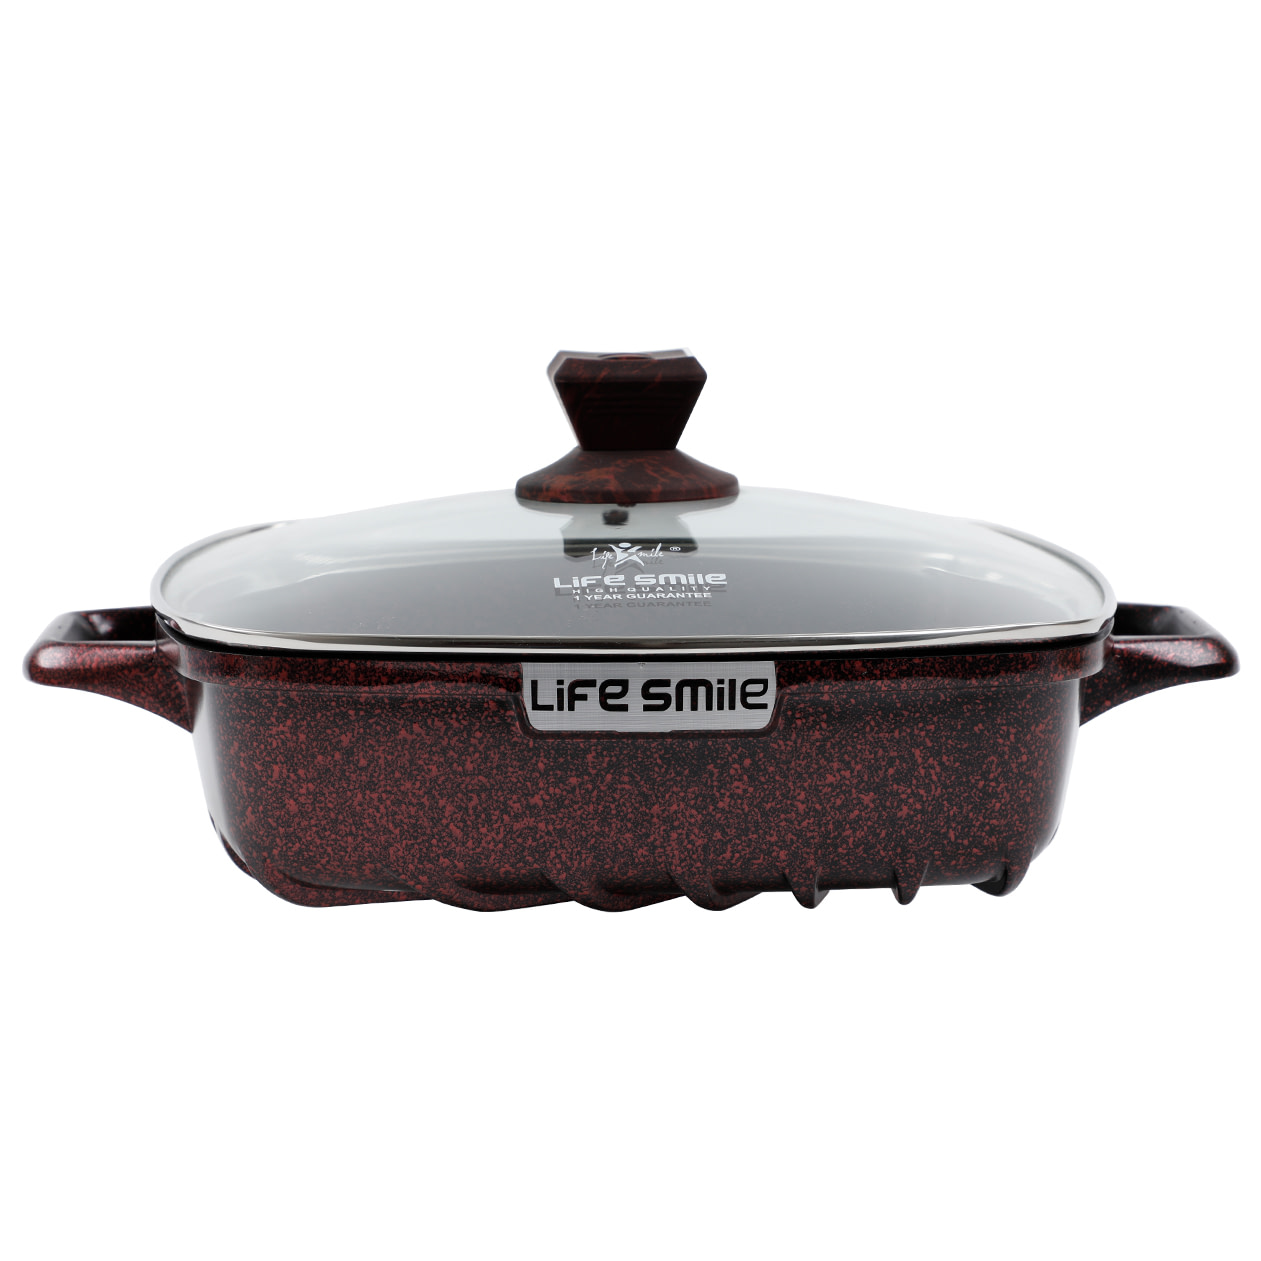 Life Smile Square Shallow Pot with Granite Coating